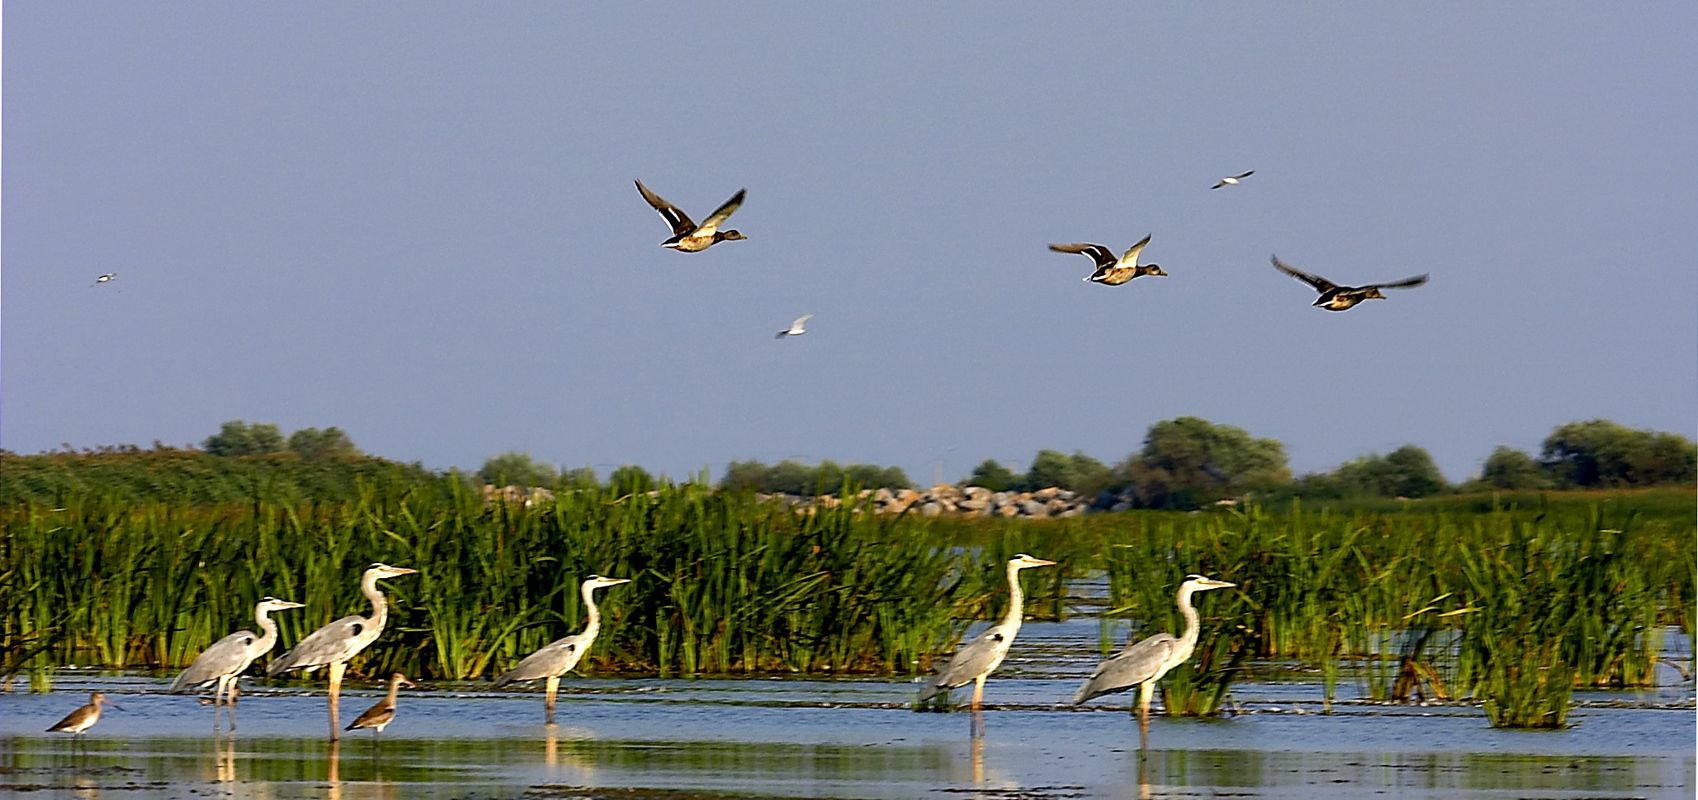 Danube Delta And Black Sea Ambasador Travel Agency